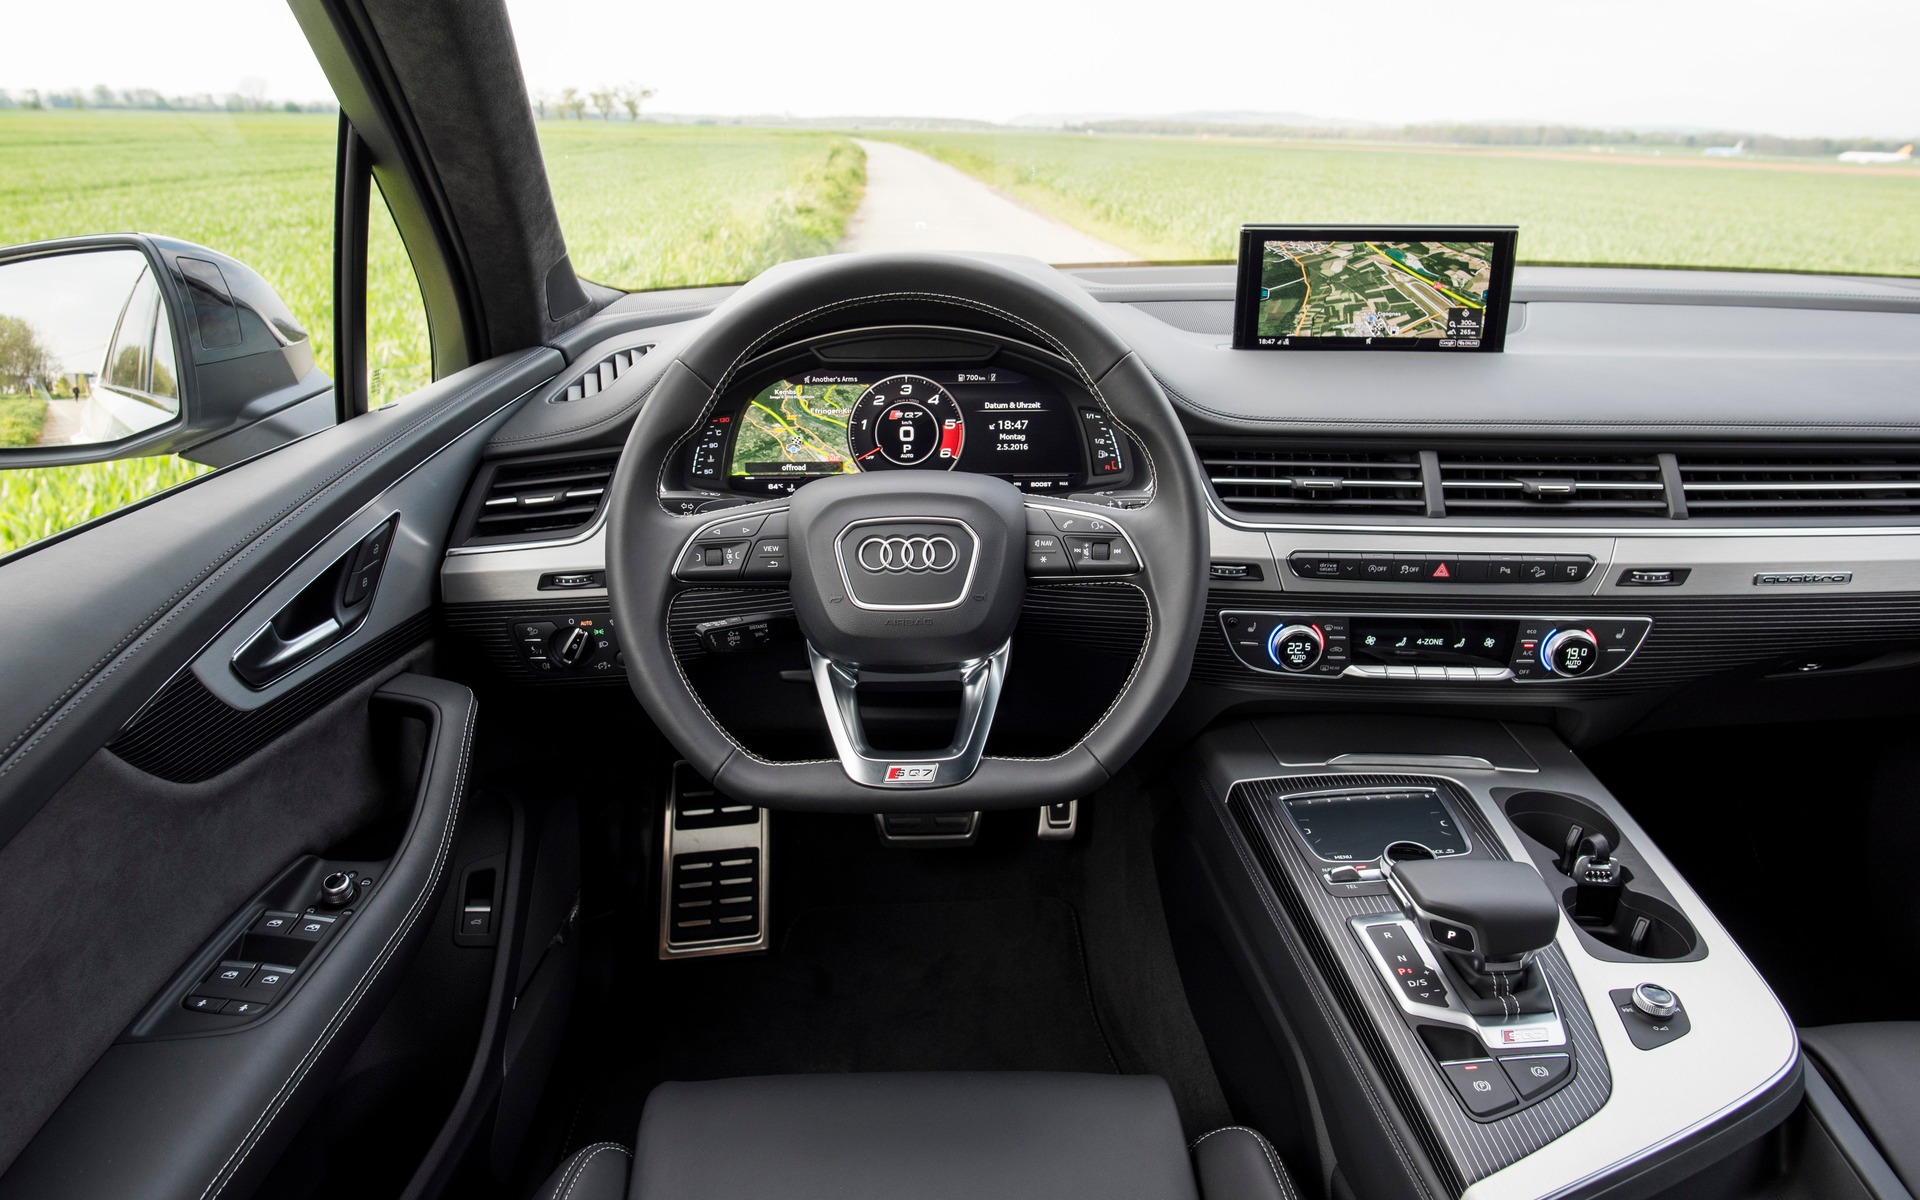 2018 Audi Sq7 Tdi The Most Powerful Of All Diesel Suvs 6 20